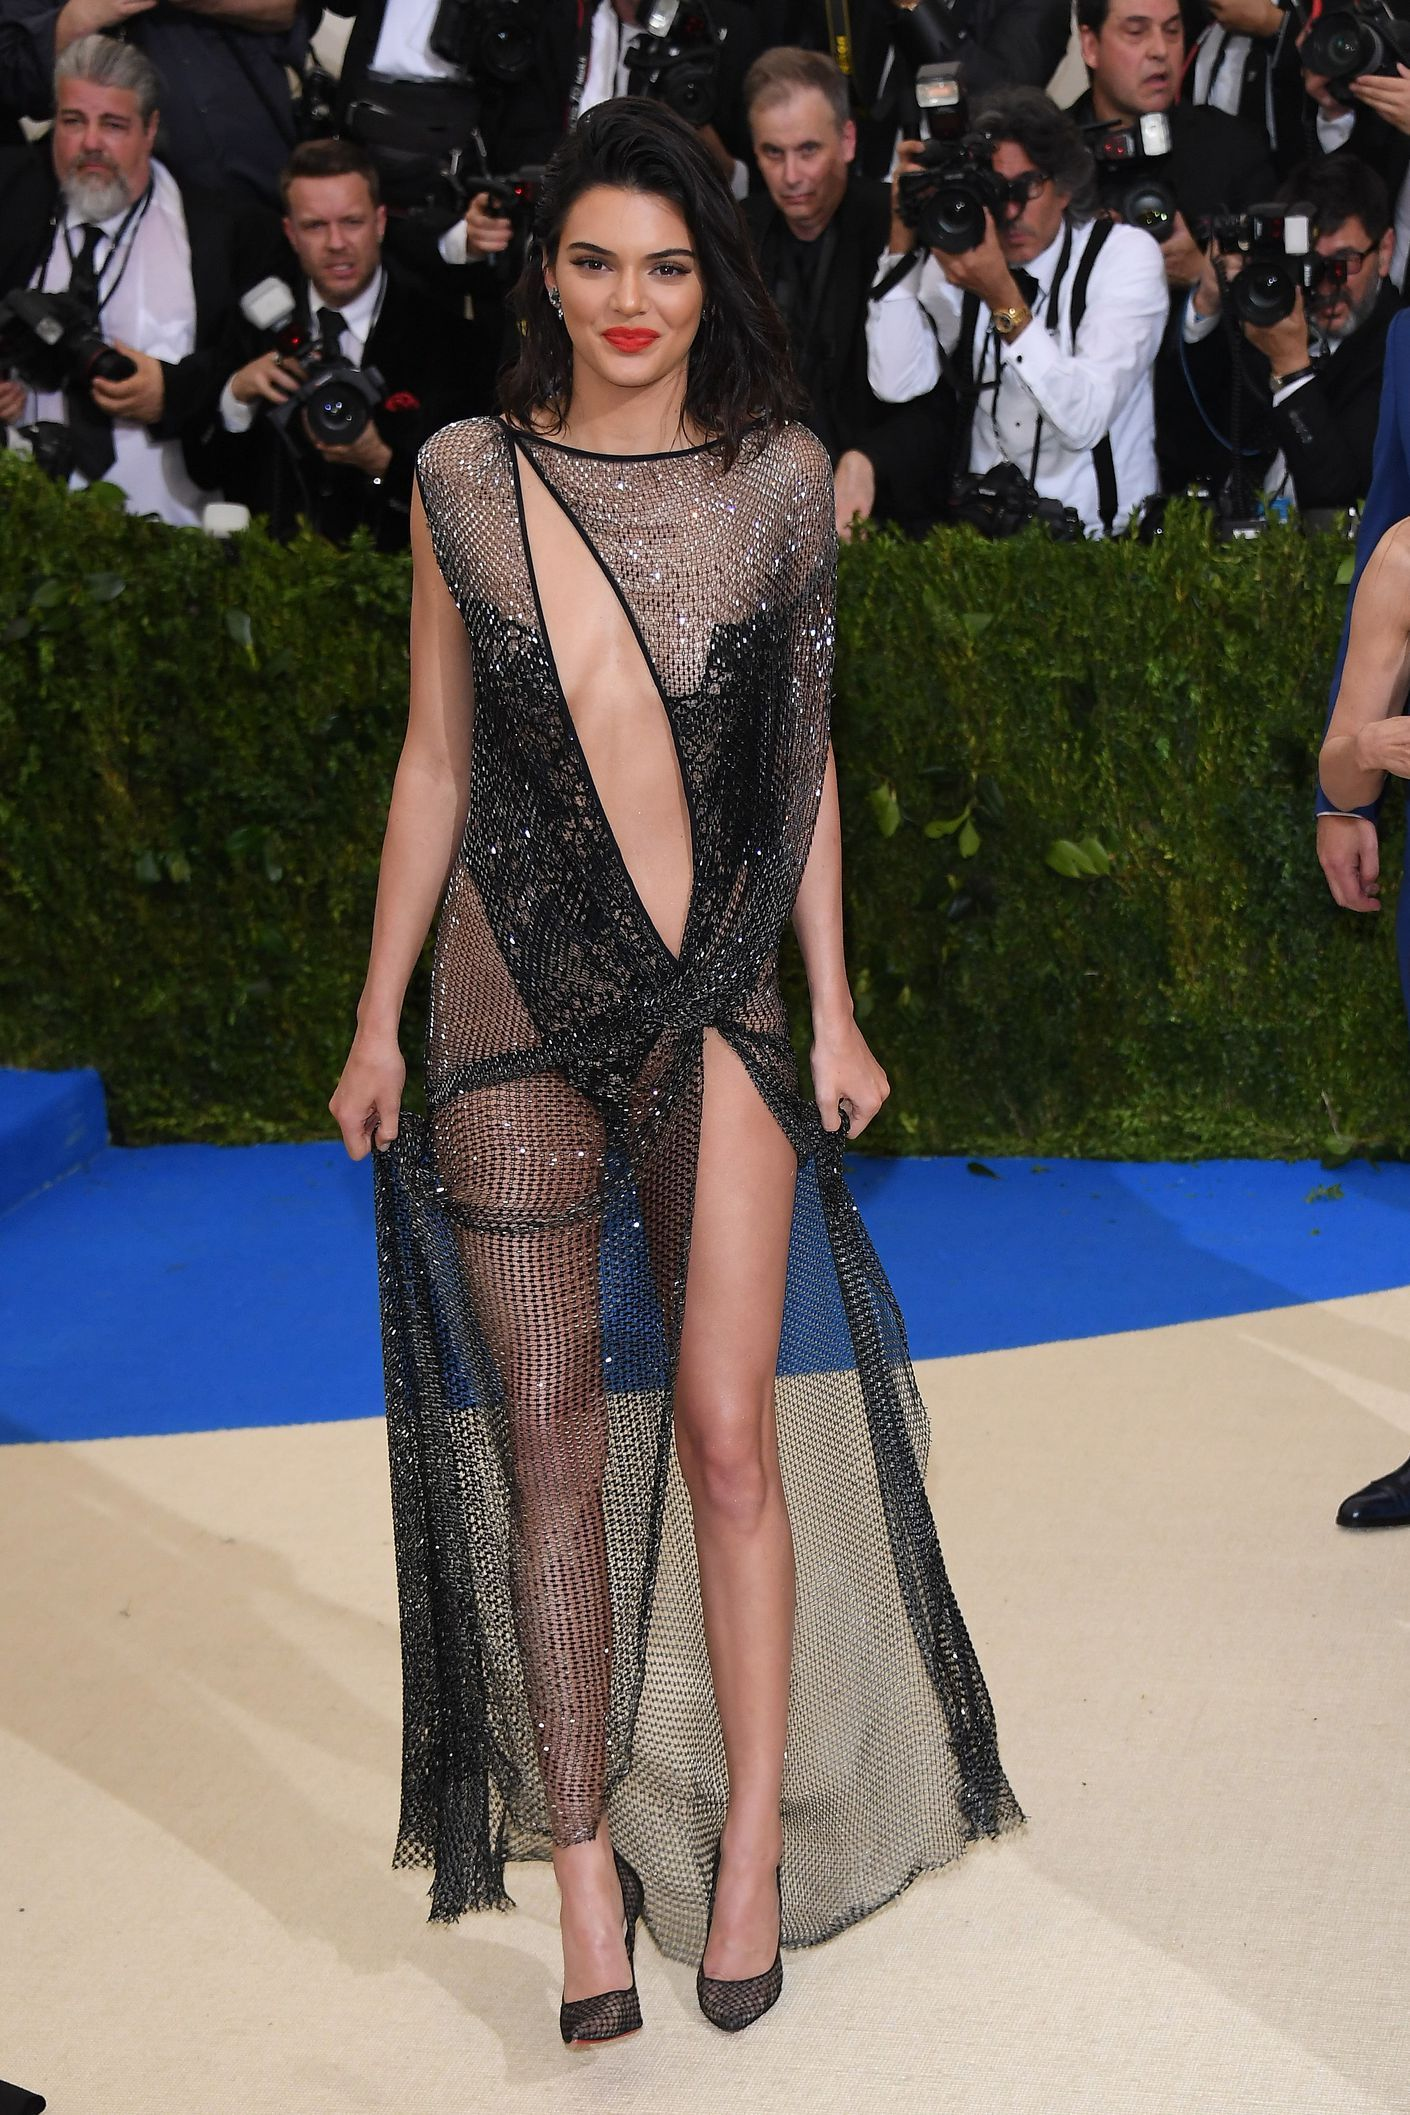 Met Gala 2017: Every Unforgettable Outfit From The Red Carpet